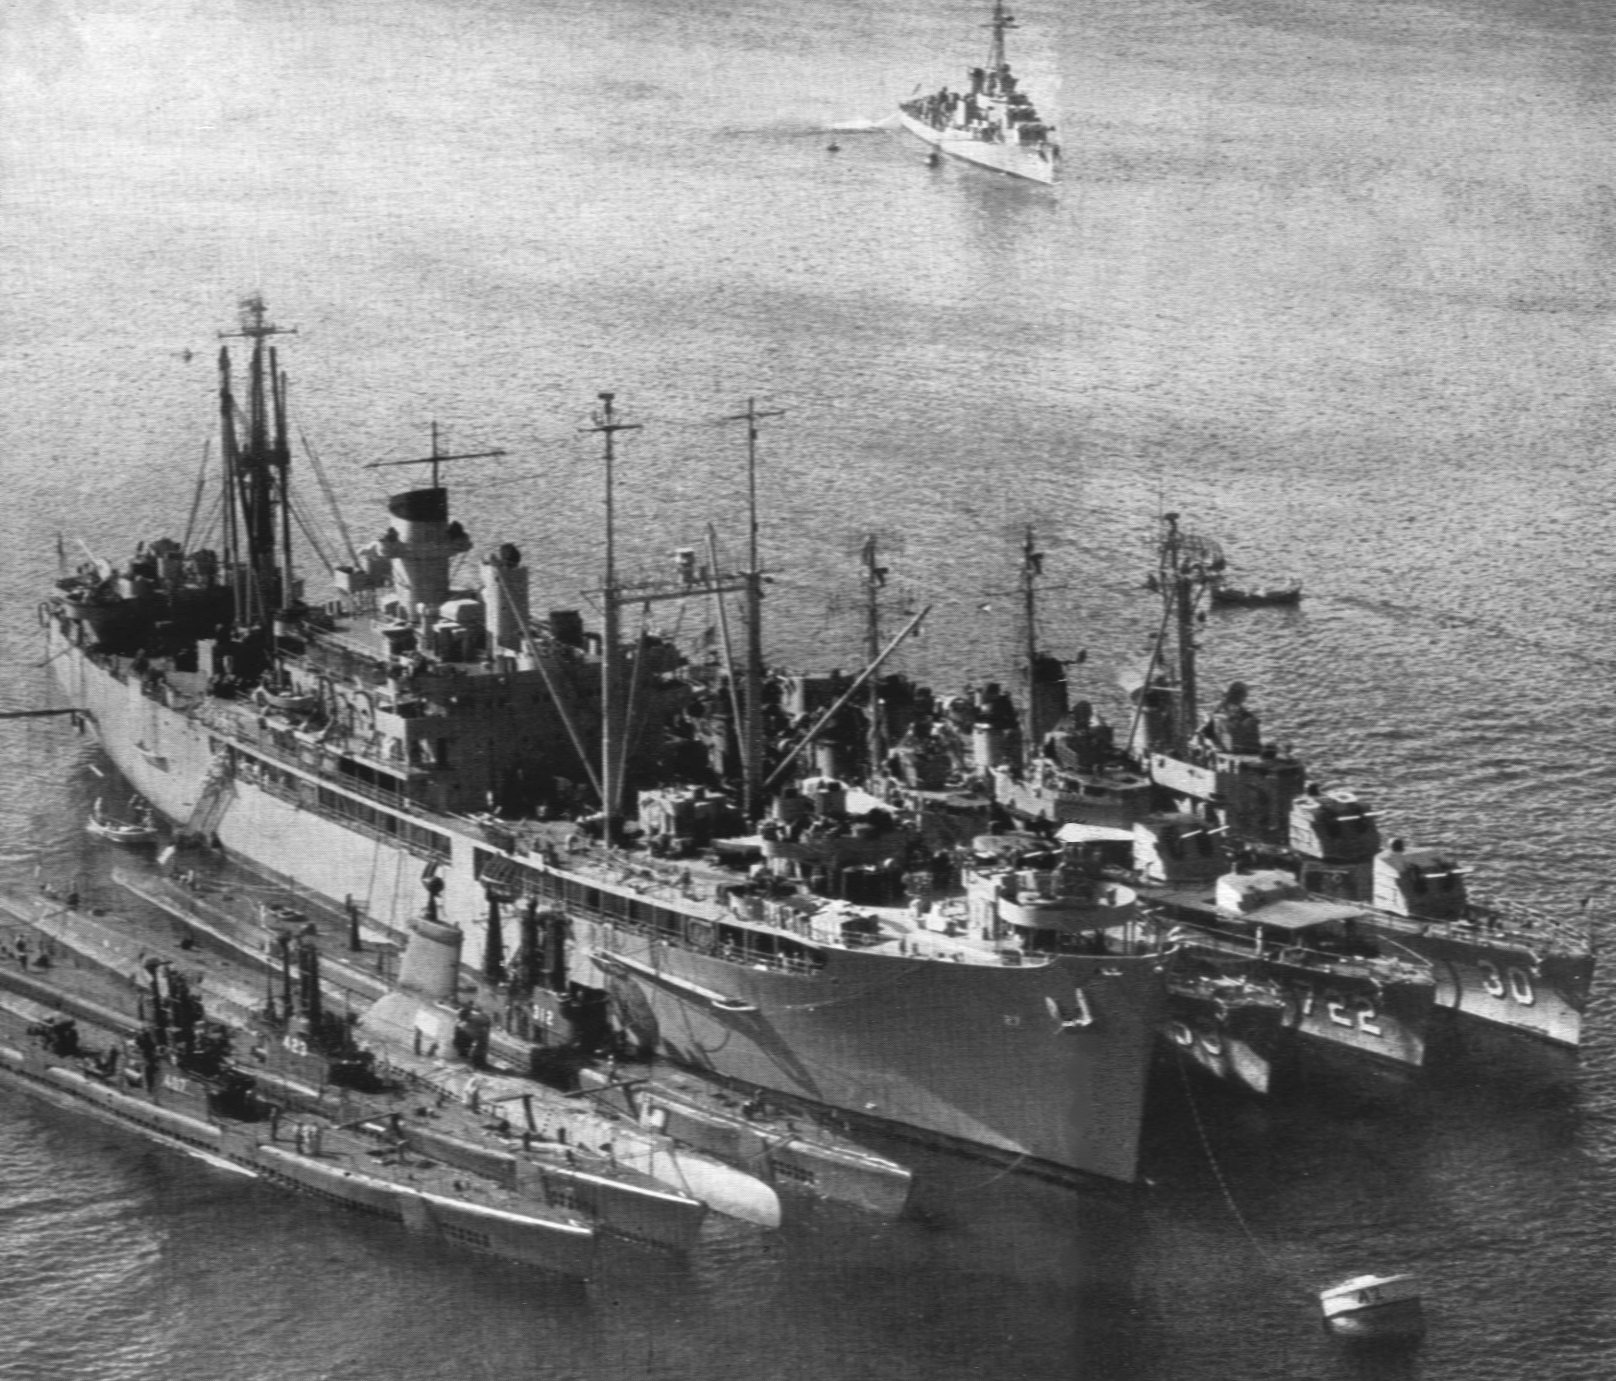 uss_yellowstone_ad-27_at_augusta_bay_with_submarines_and_destroyers_in_1950